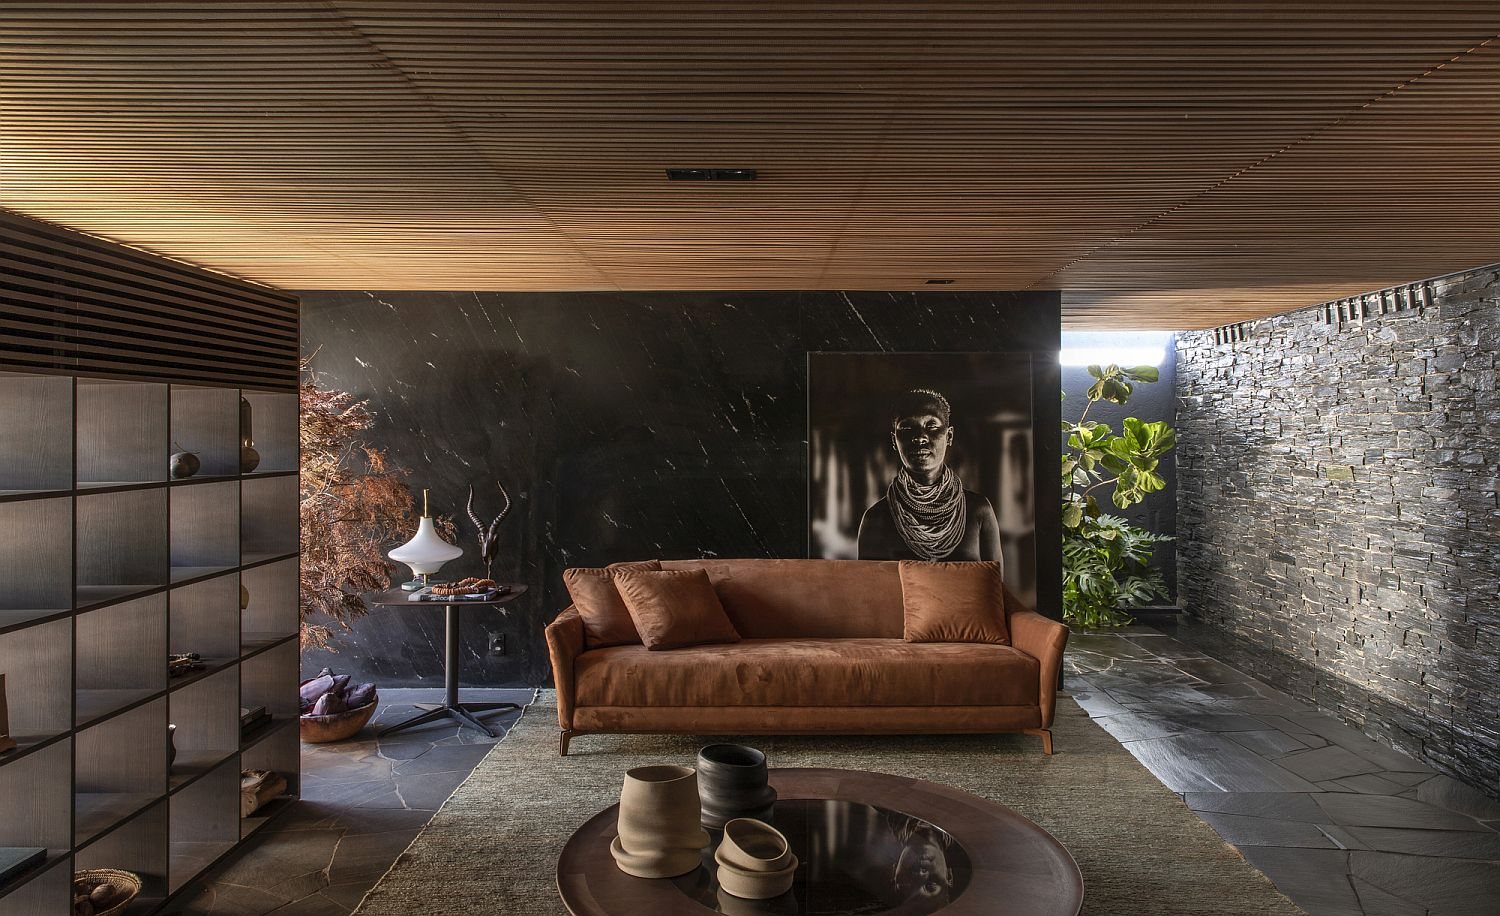 Earthen tones, wood and dark stone combined beautifully in the living room